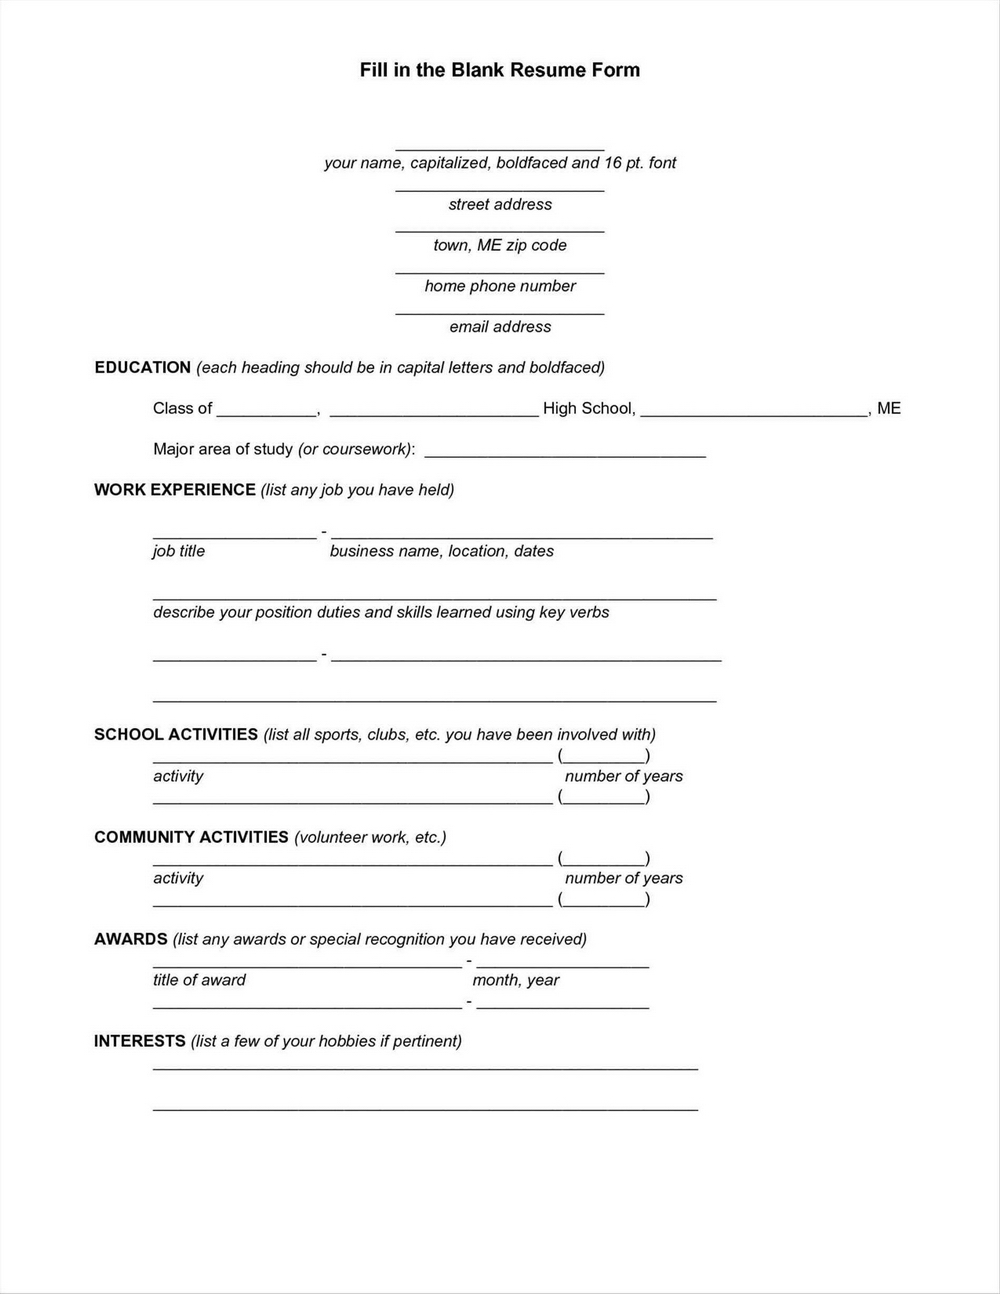 Free Fillable Resume Templates Microsoft